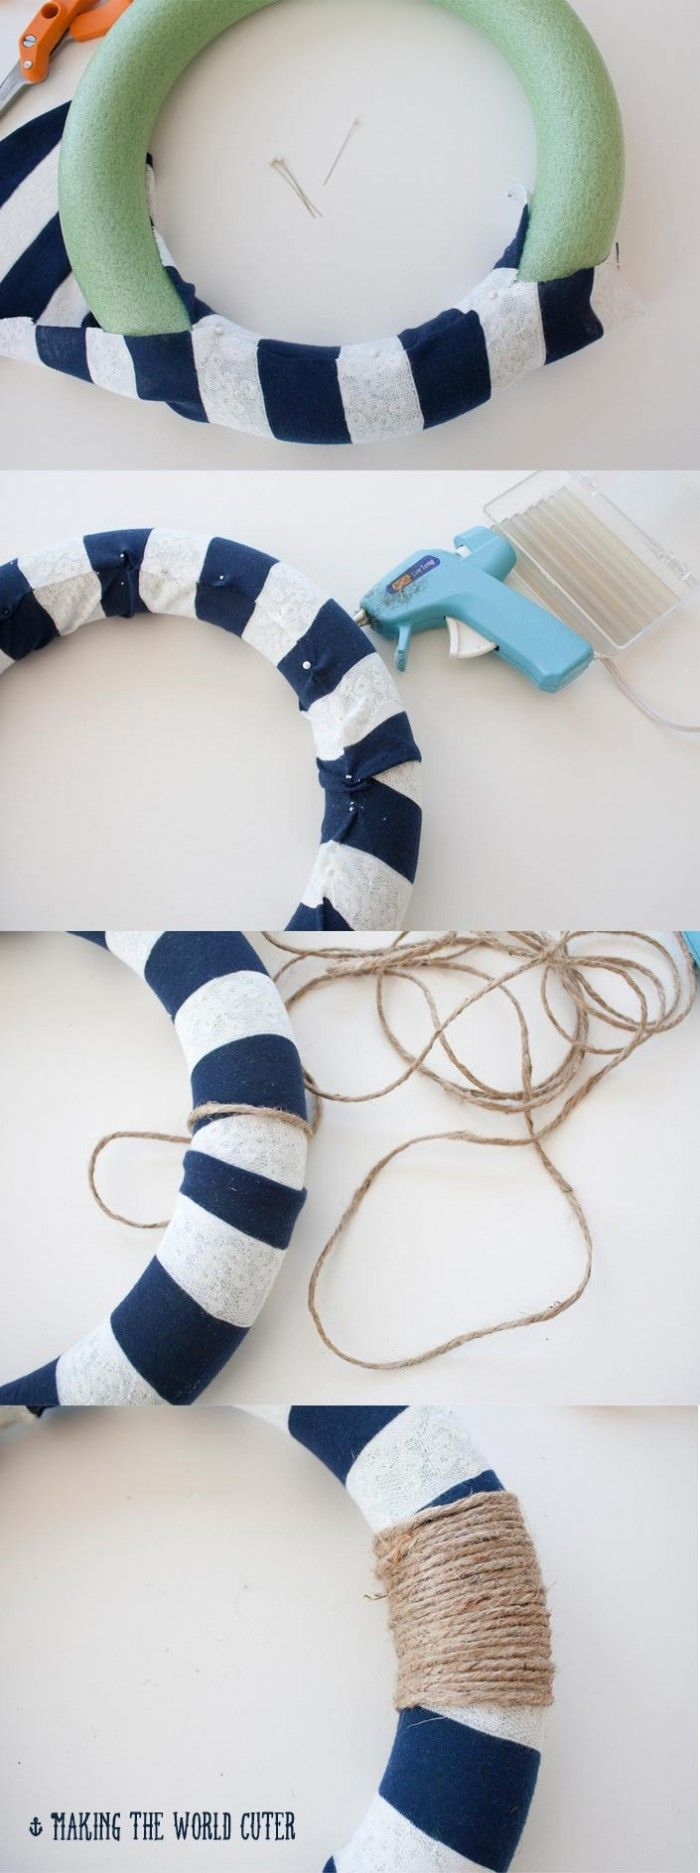 DIY Wreath Nautical Decor from Making the World Cuter. This is so cute! I love the little anchor!